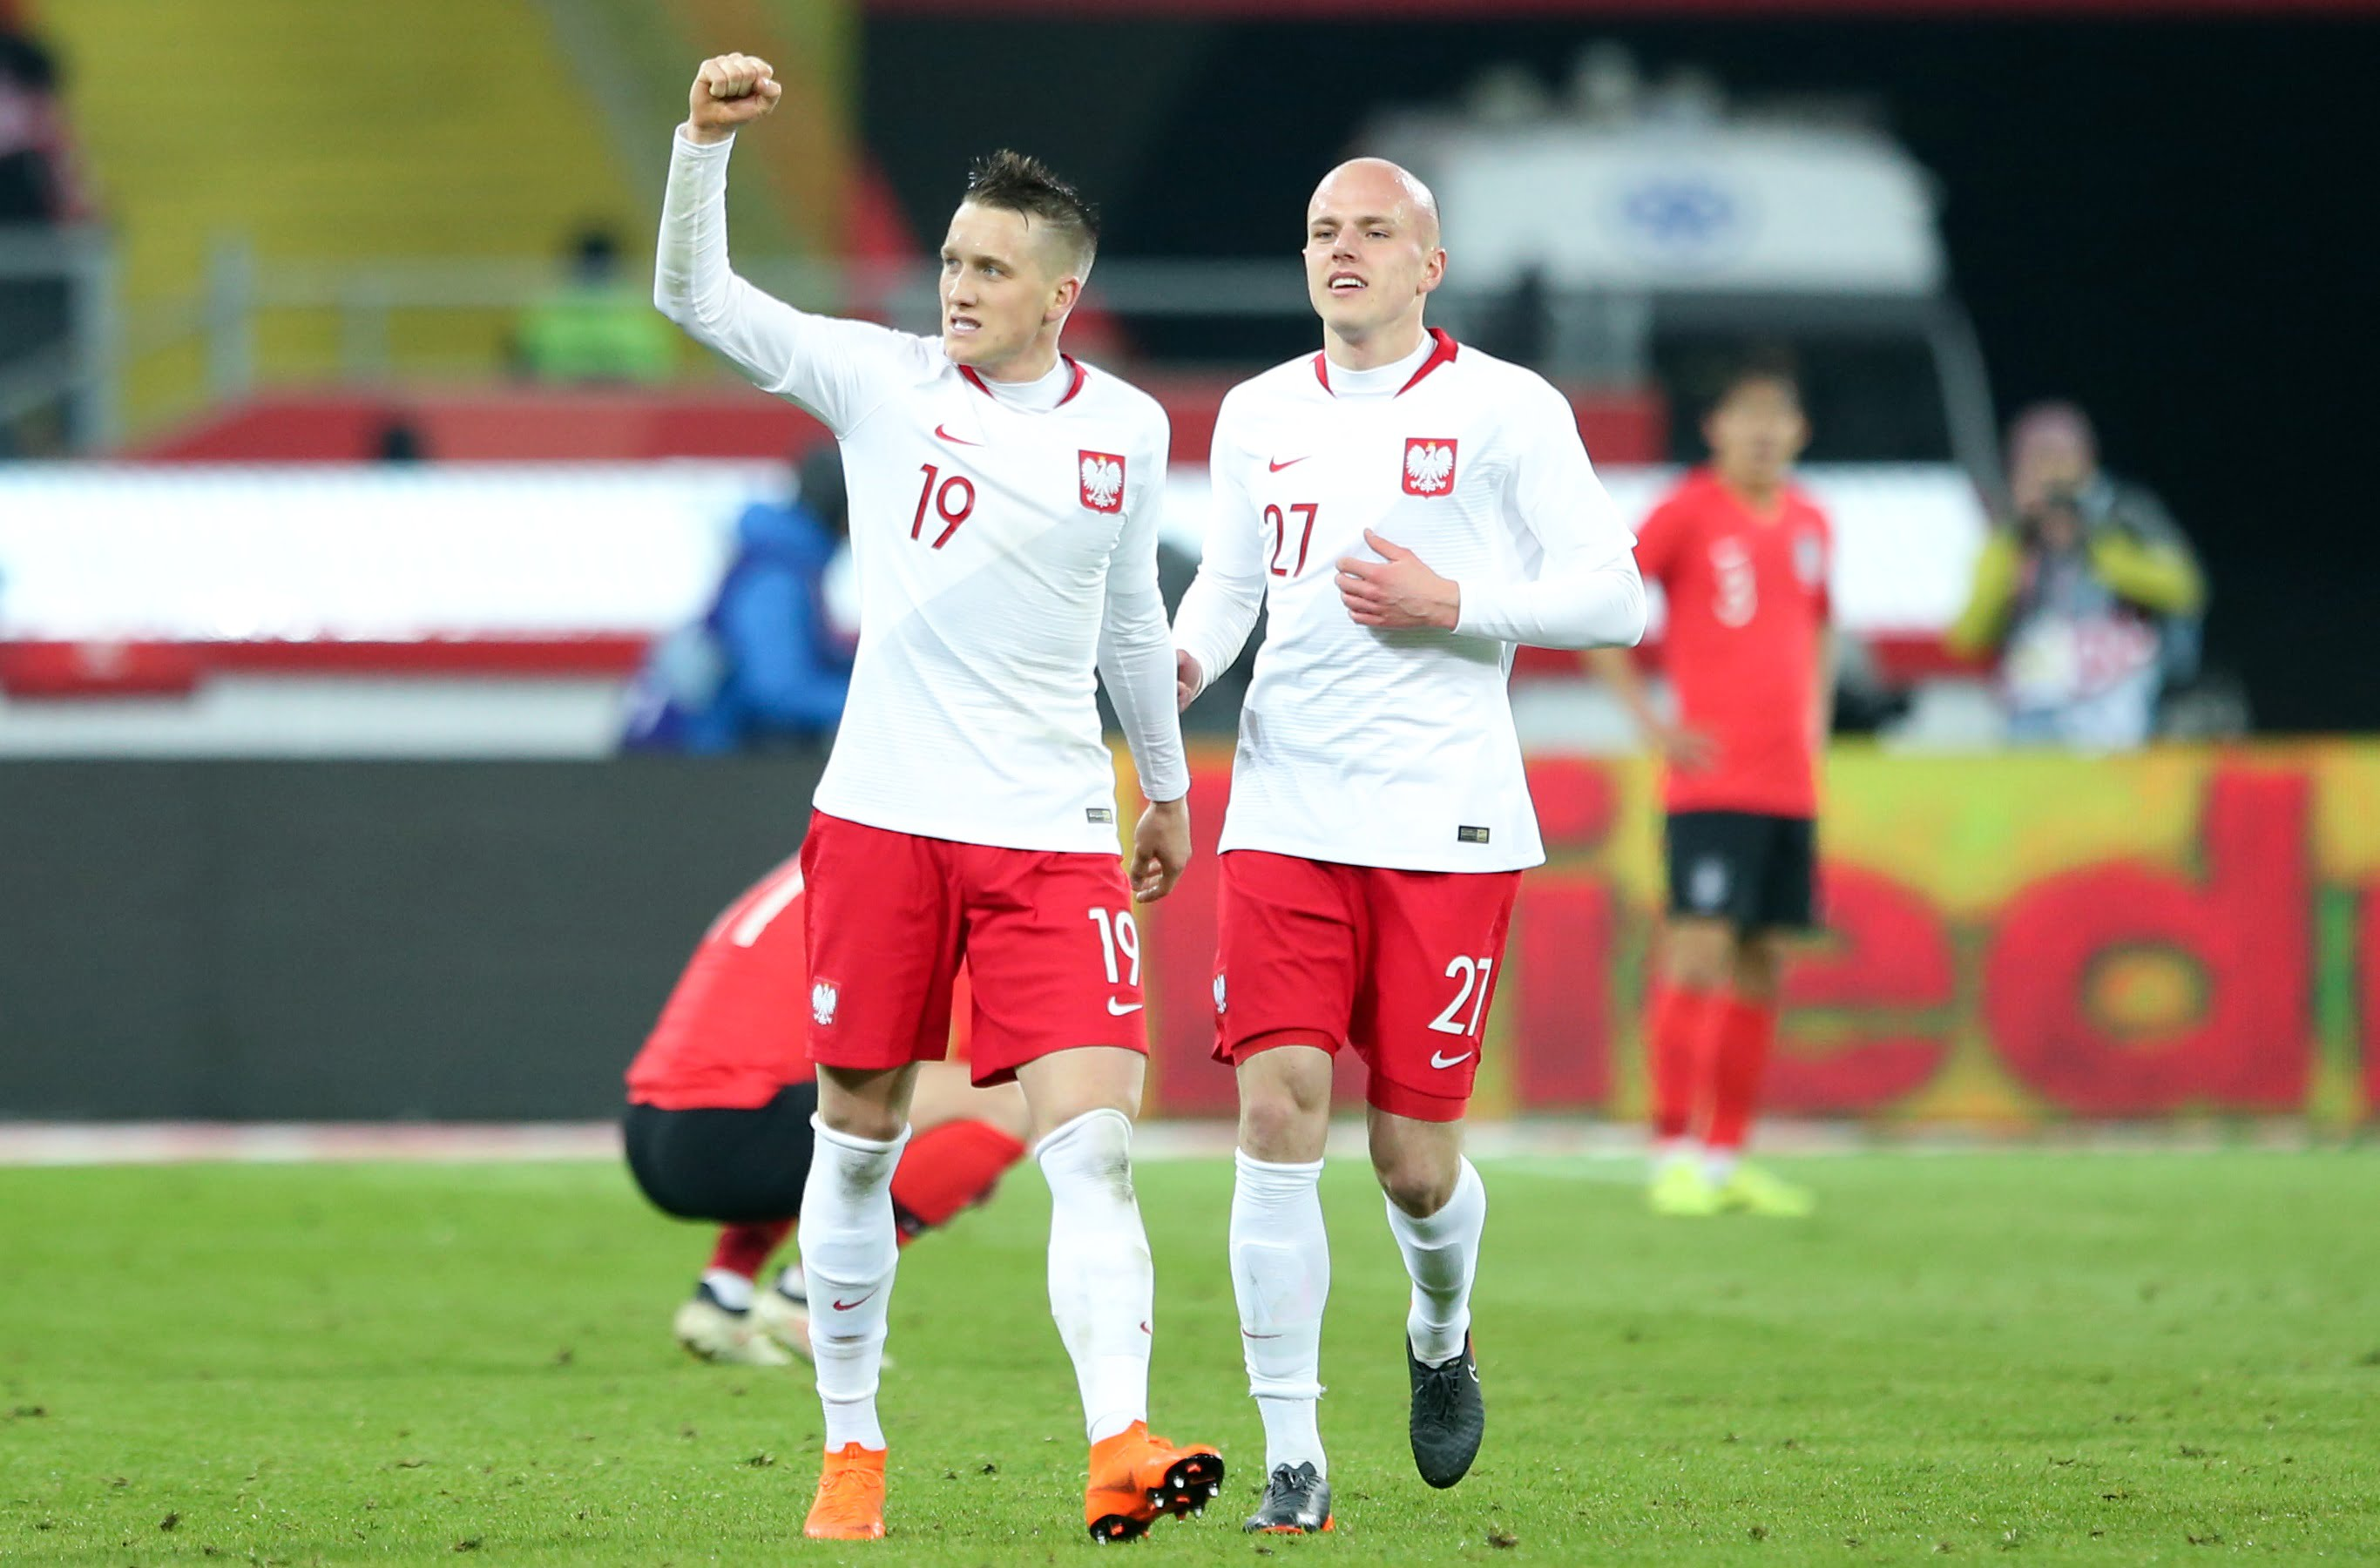 CHORZOW 27.03.2018 MIEDZYNARODOWY MECZ TOWARZYSKI: POLSKA - KOREA POLUDNIOWA 3:2 --- INTERNATIONAL FRIENDLY FOOTBALL MATCH: POLAND - SOUTH KOREA 3:2 PIOTR ZIELINSKI RAFAL KURZAWA FOT. PIOTR KUCZA/ 400mm.pl